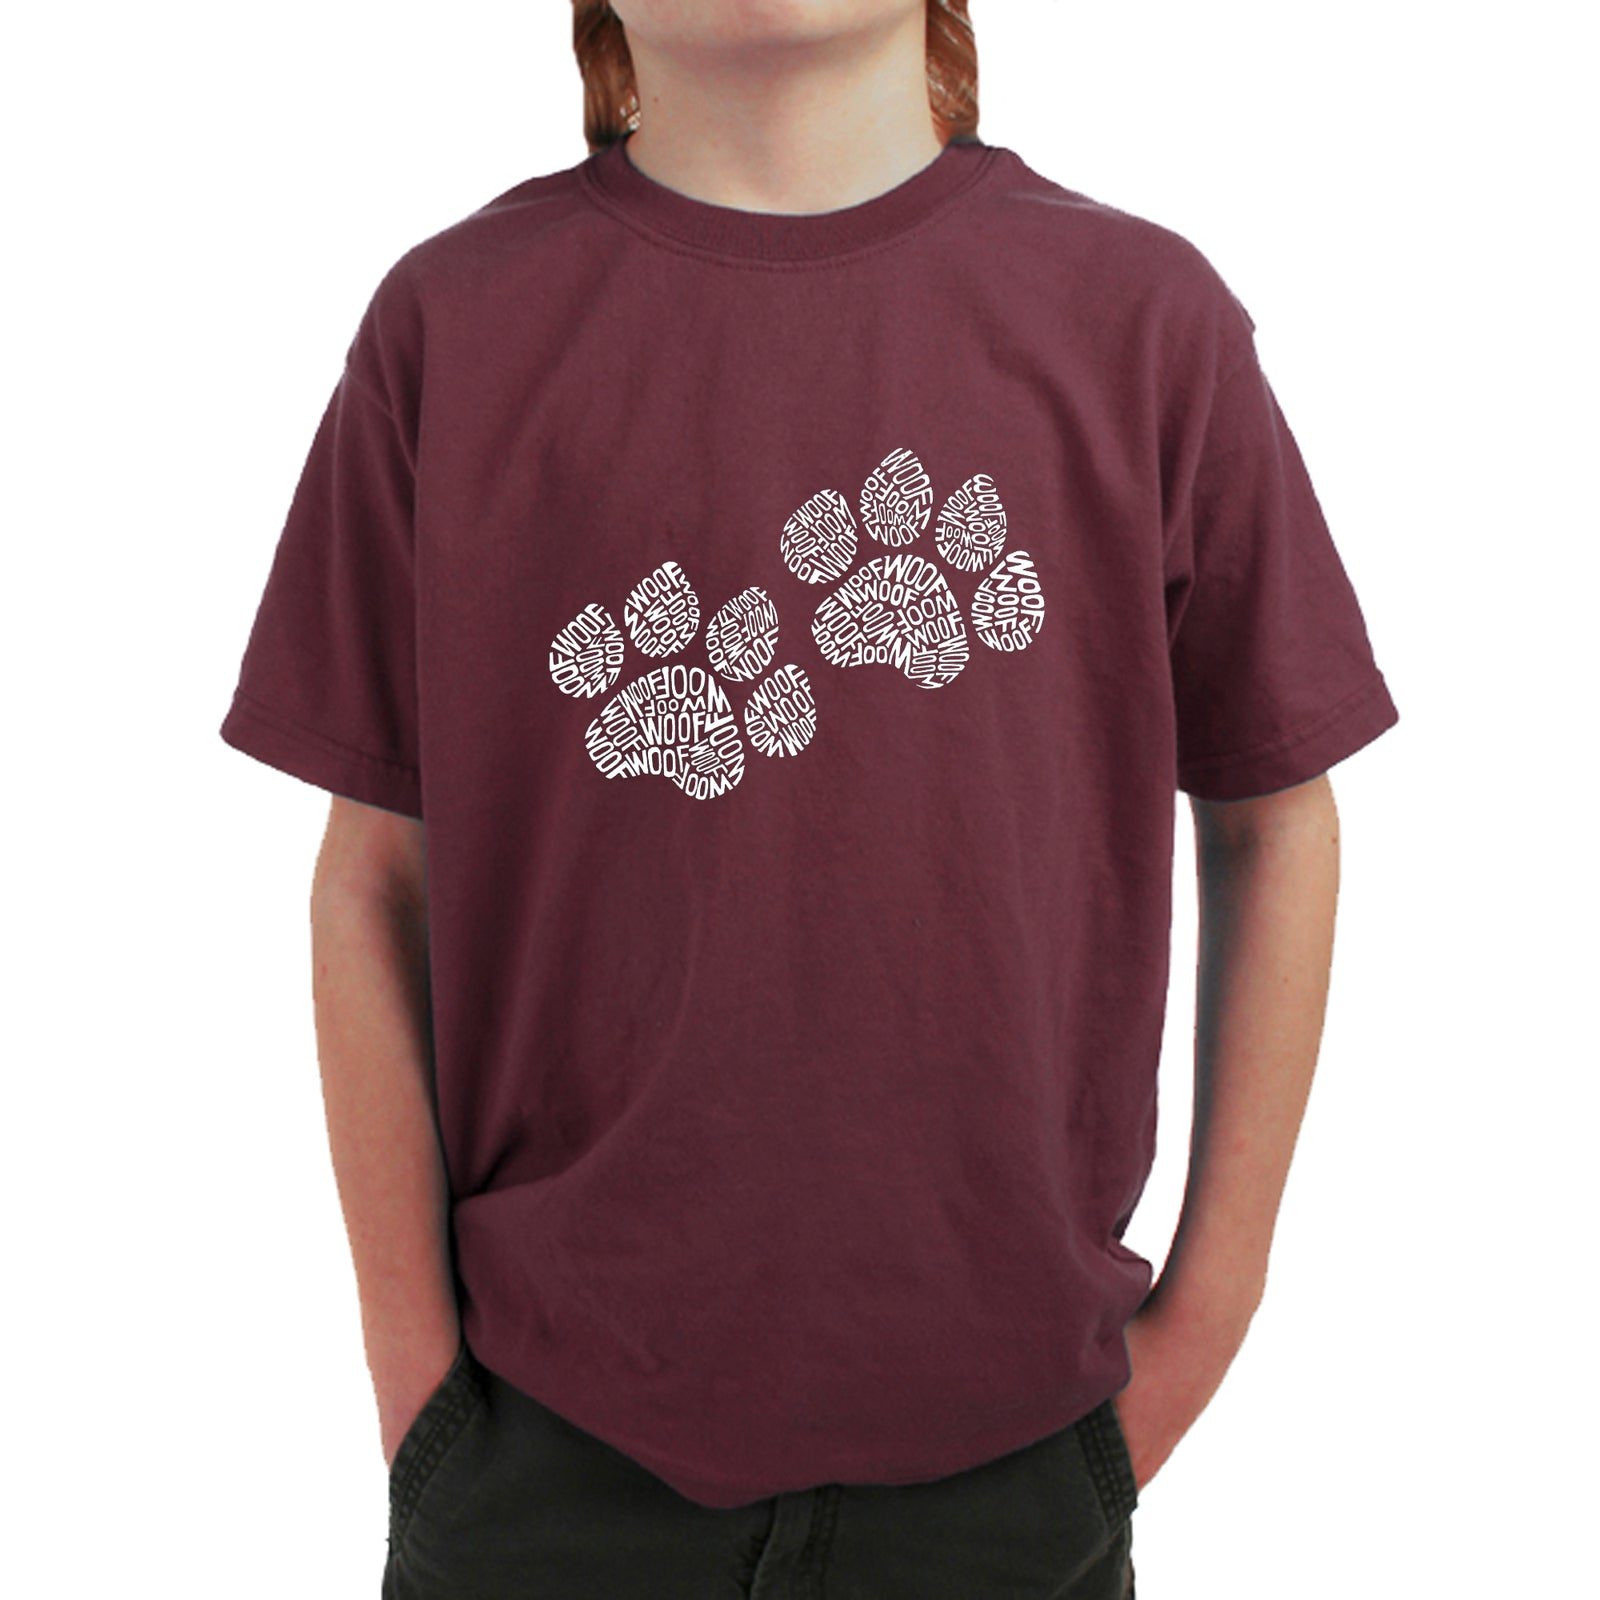 Boy's T-shirt - Woof Paw Prints